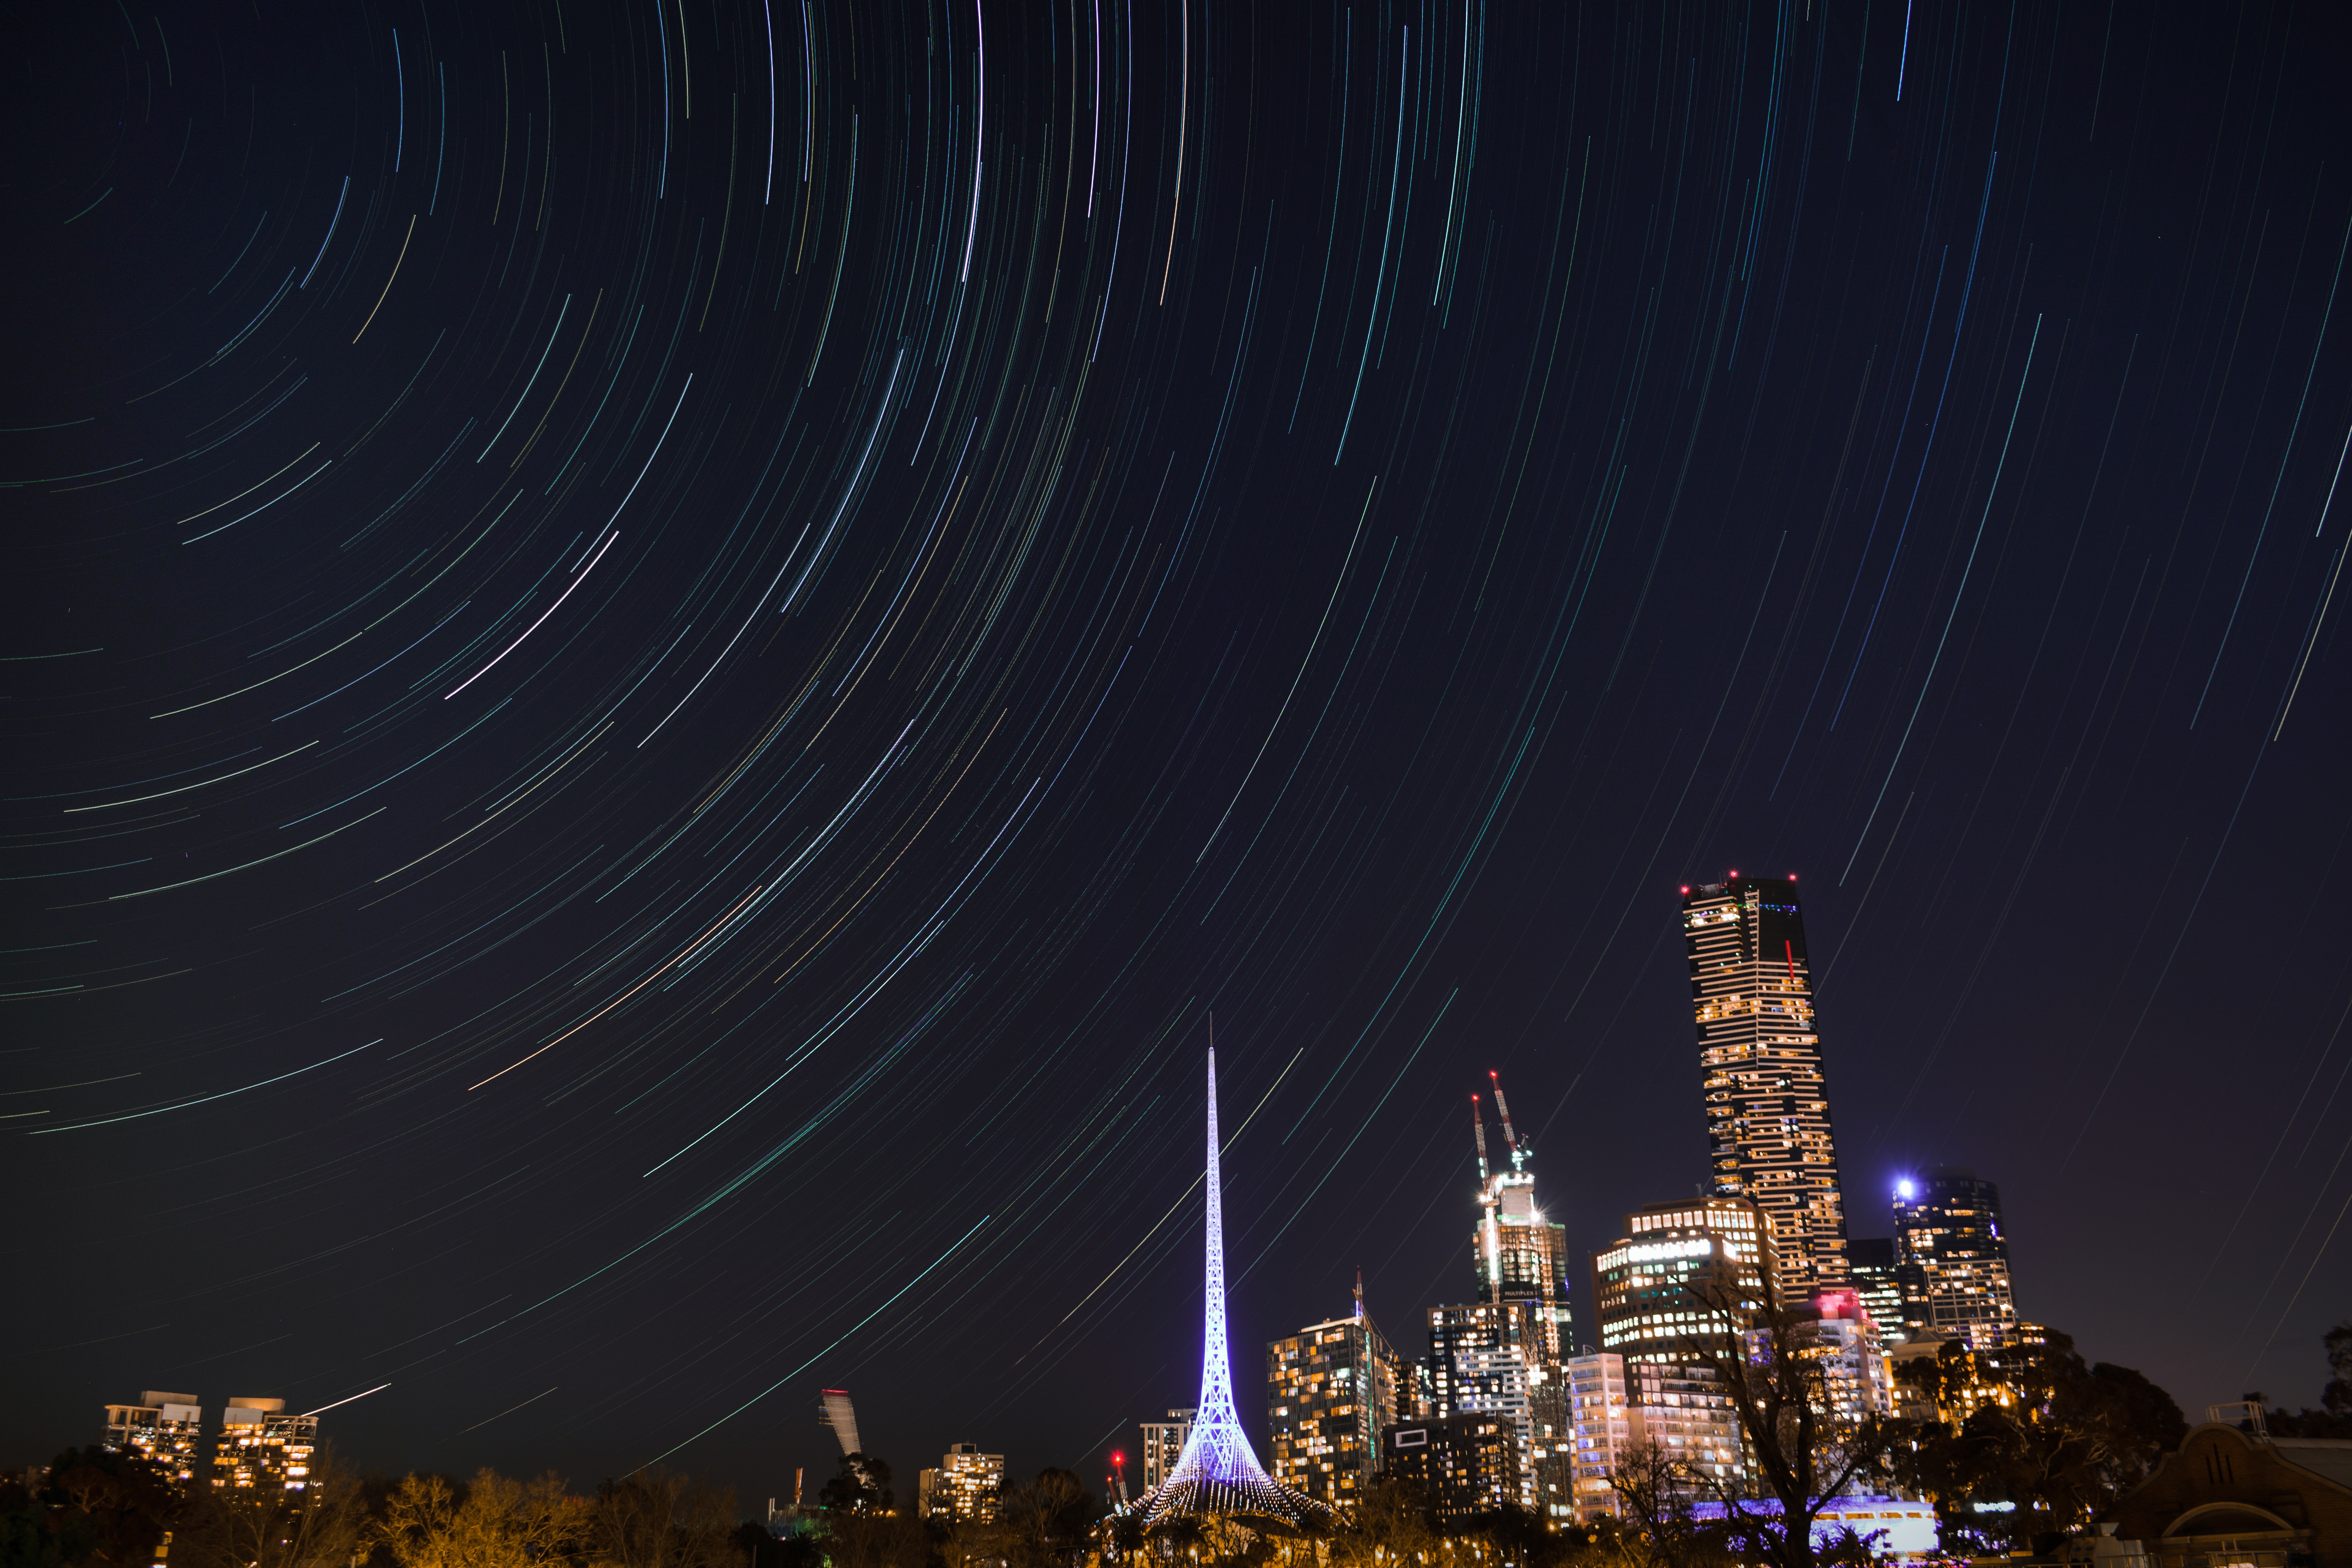 time lapse photography of cityscape under night sky